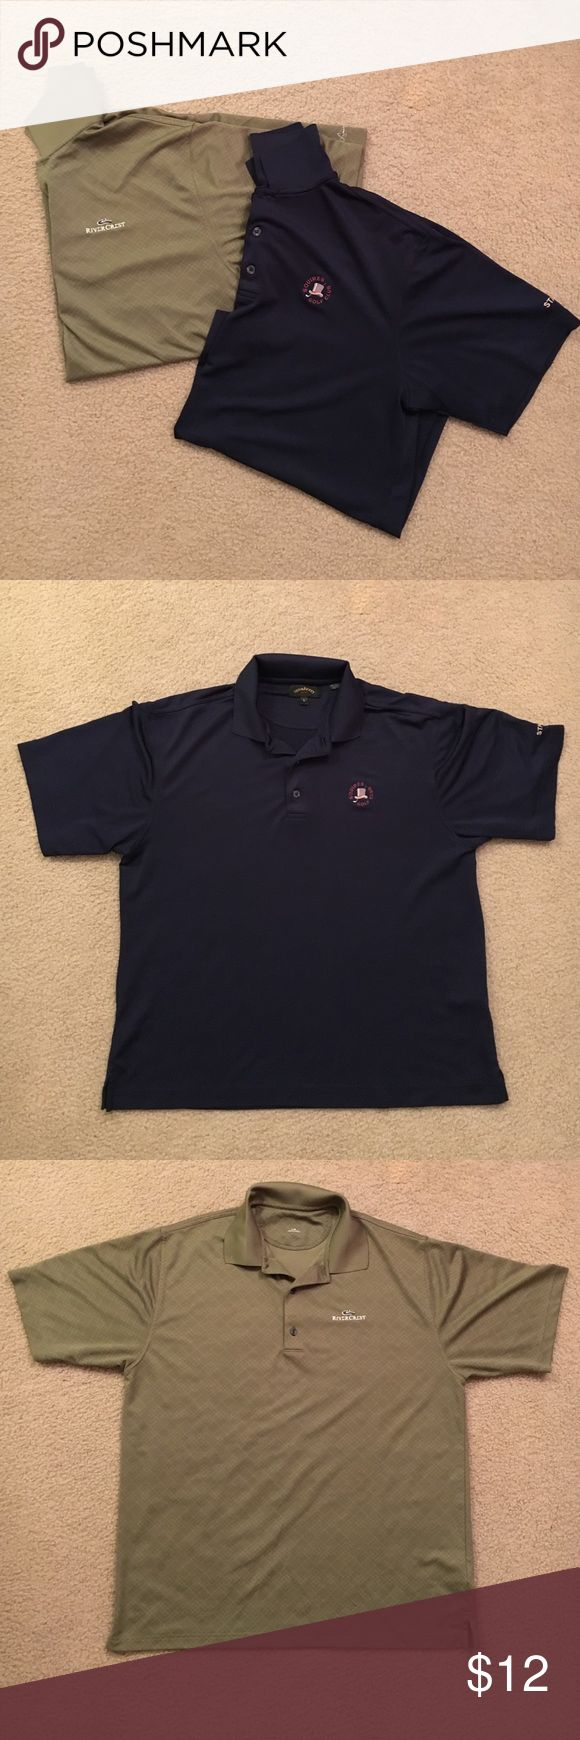 Bundle Men's Golf Polos 2 golf shirts in good condition. Shirts Polos